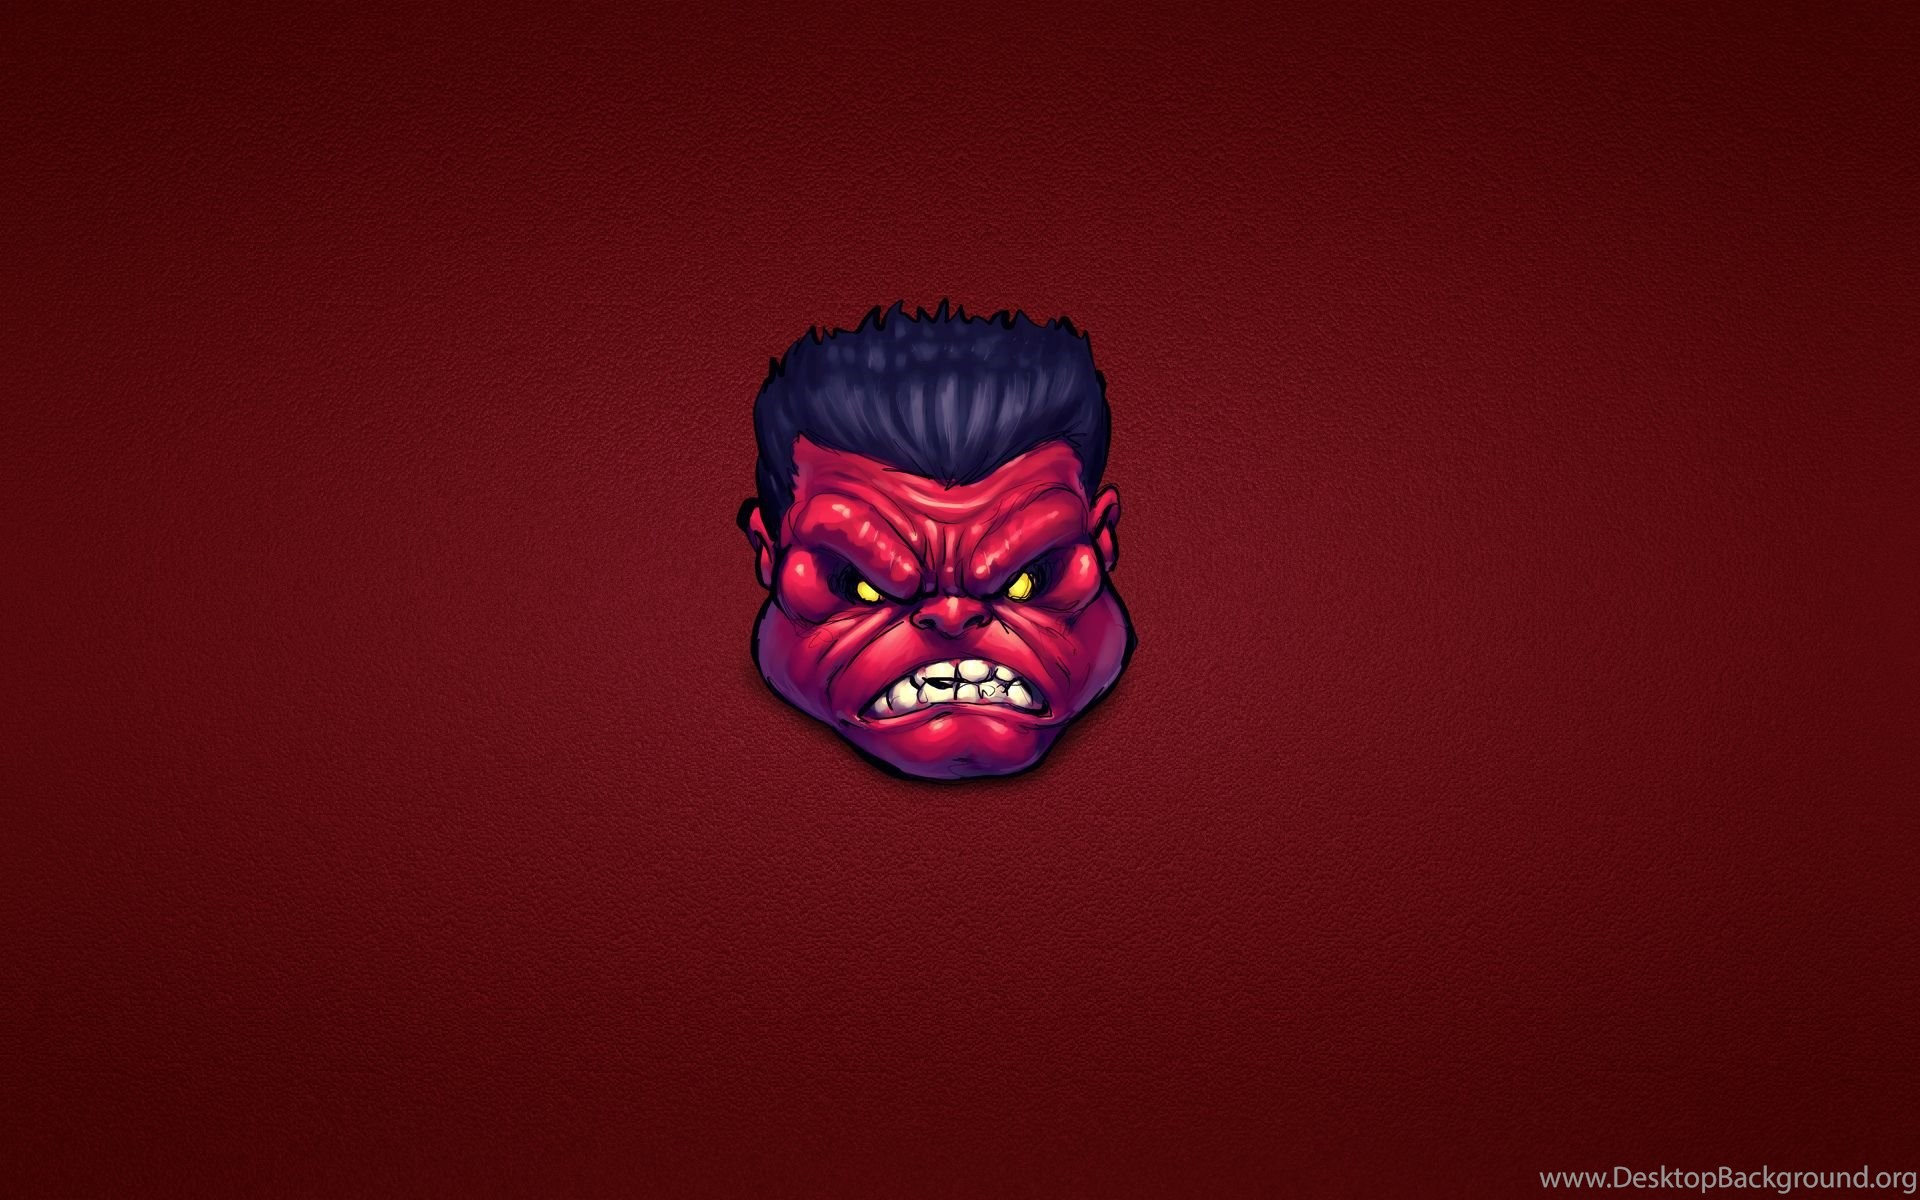 Simple Wallpaper Marvel Face - 413113_red-hulk-comics-marvel-minimalism-face-eyes-pov-art-wallpapers_1920x1200_h  You Should Have_928563.jpg